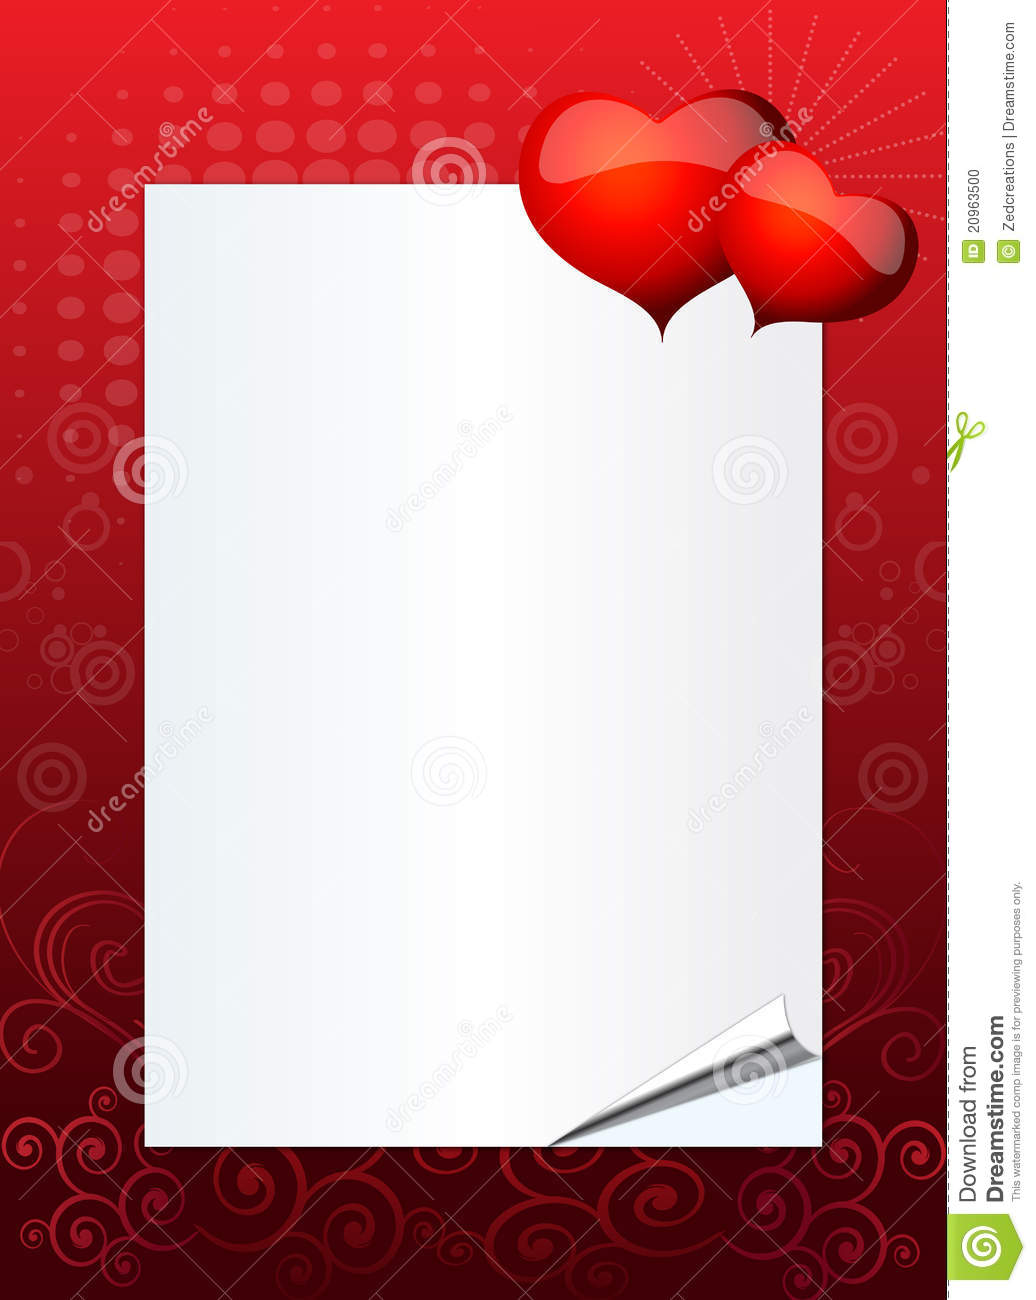 Valentine Or Wedding Invitation Stock Vector - Illustration of ...